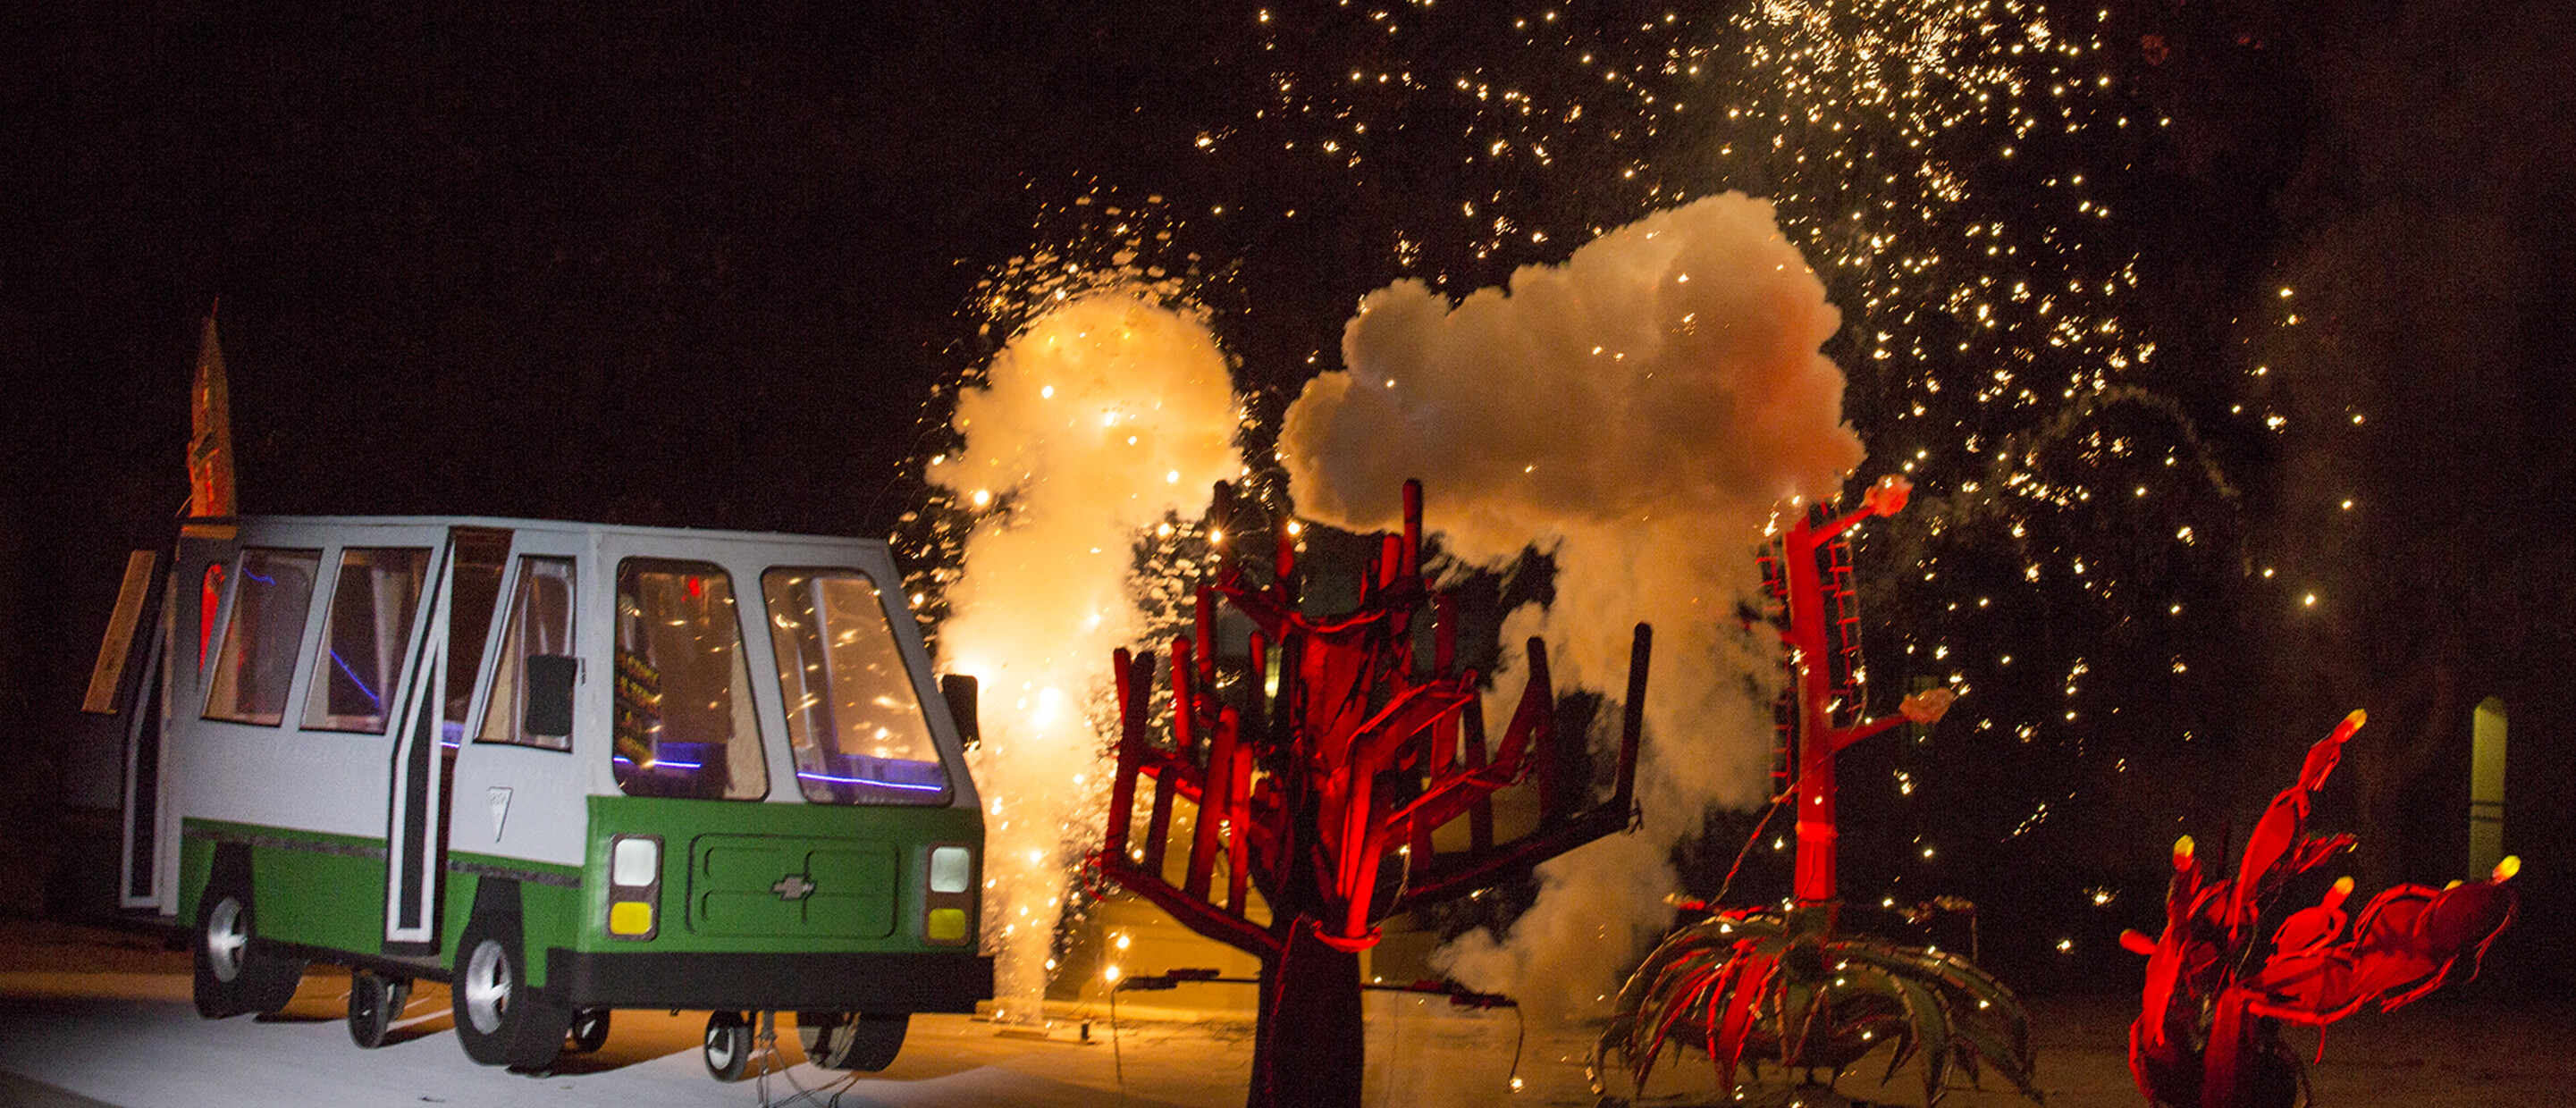 Papermaché microbus and cacti being blown up using pyrotechnics